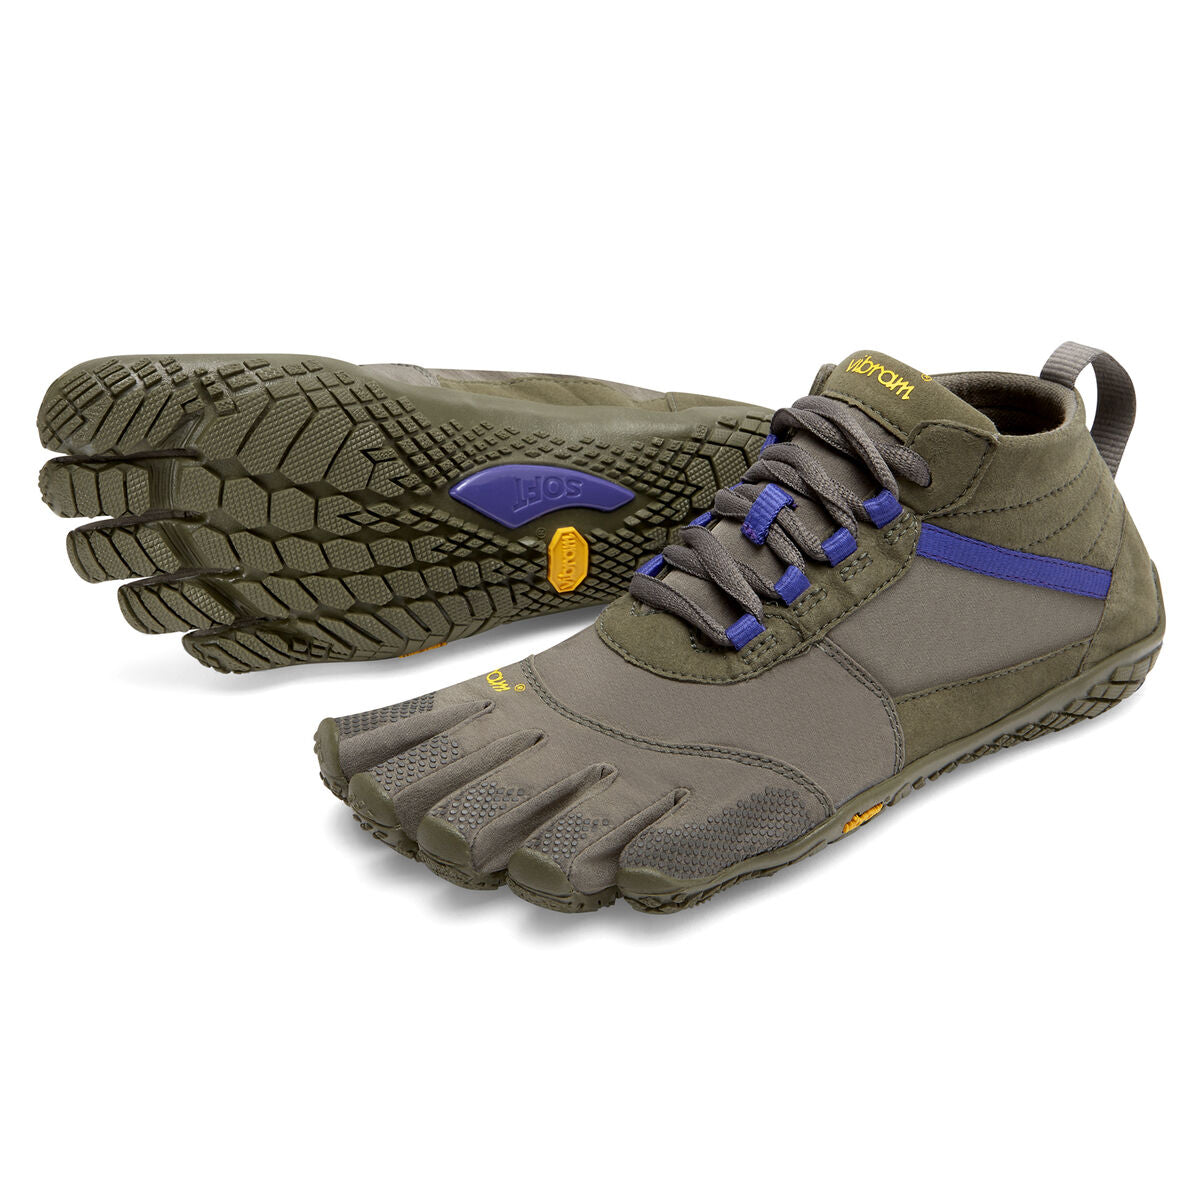 Women's Vibram Five Fingers V-Trek Hiking Shoe in Military/Purple from the front